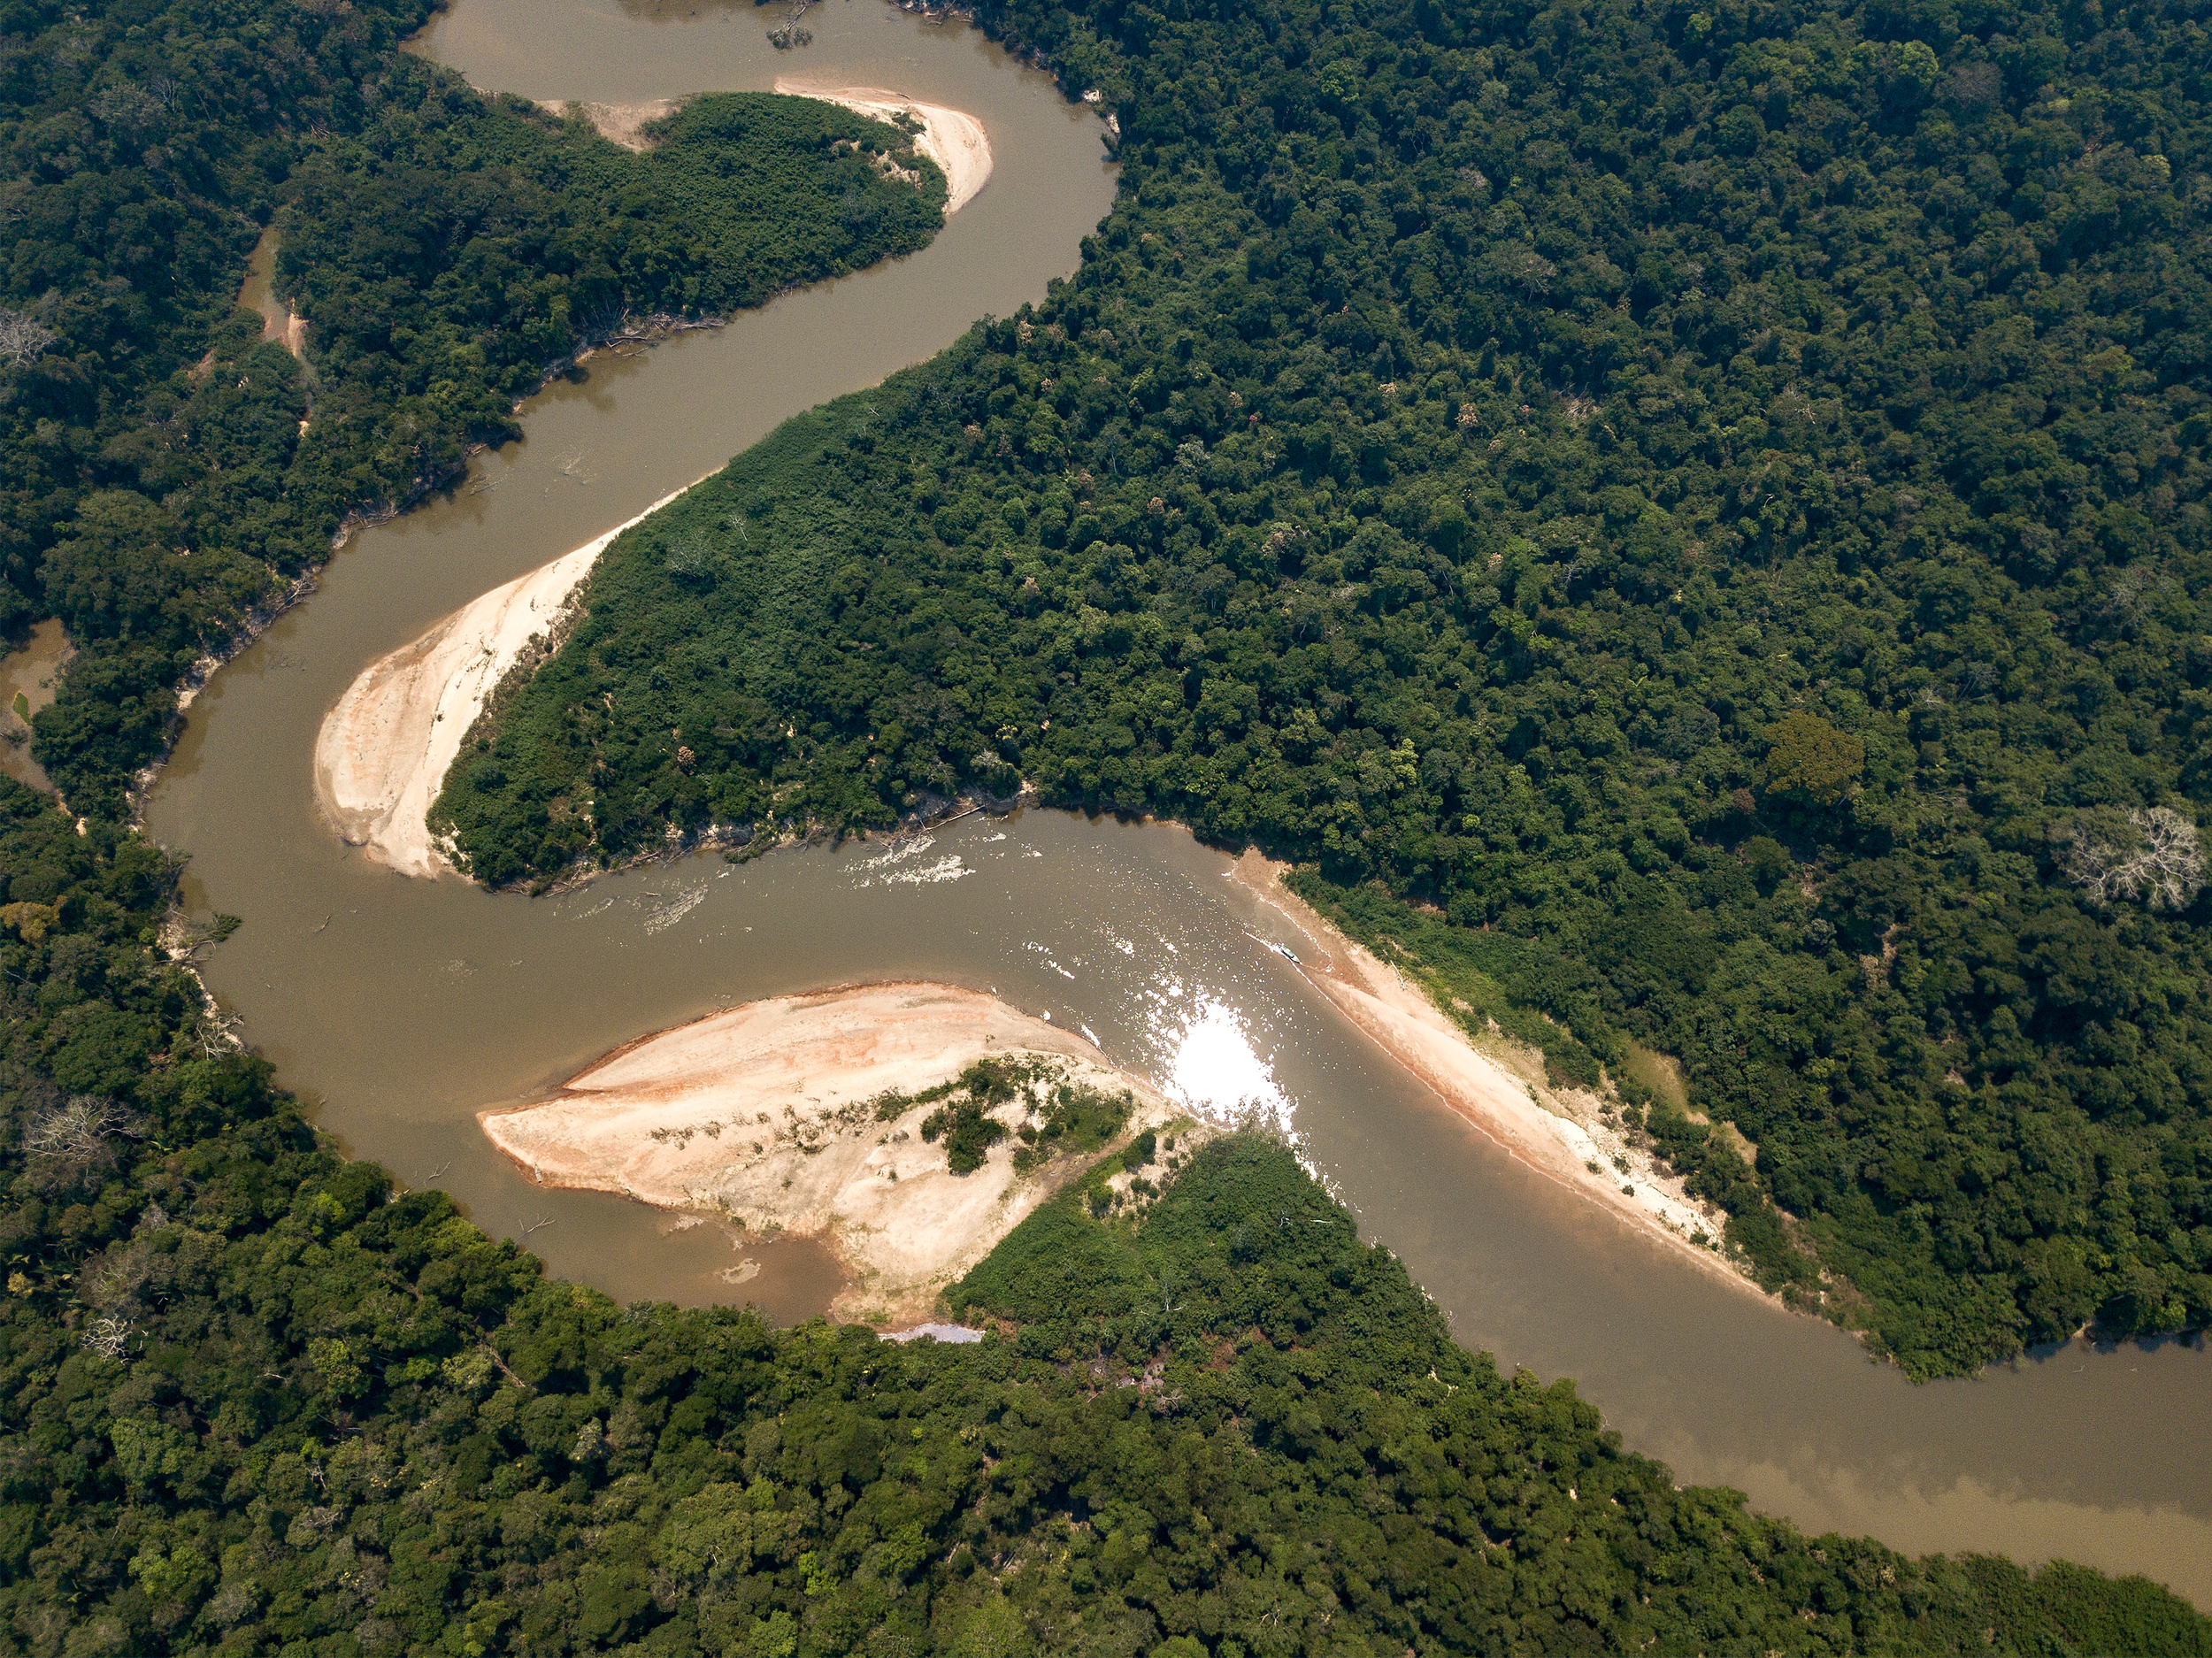 Aerial view of a river glinting in the sun, winding through dense rainforest, with bends and beaches at each bend.